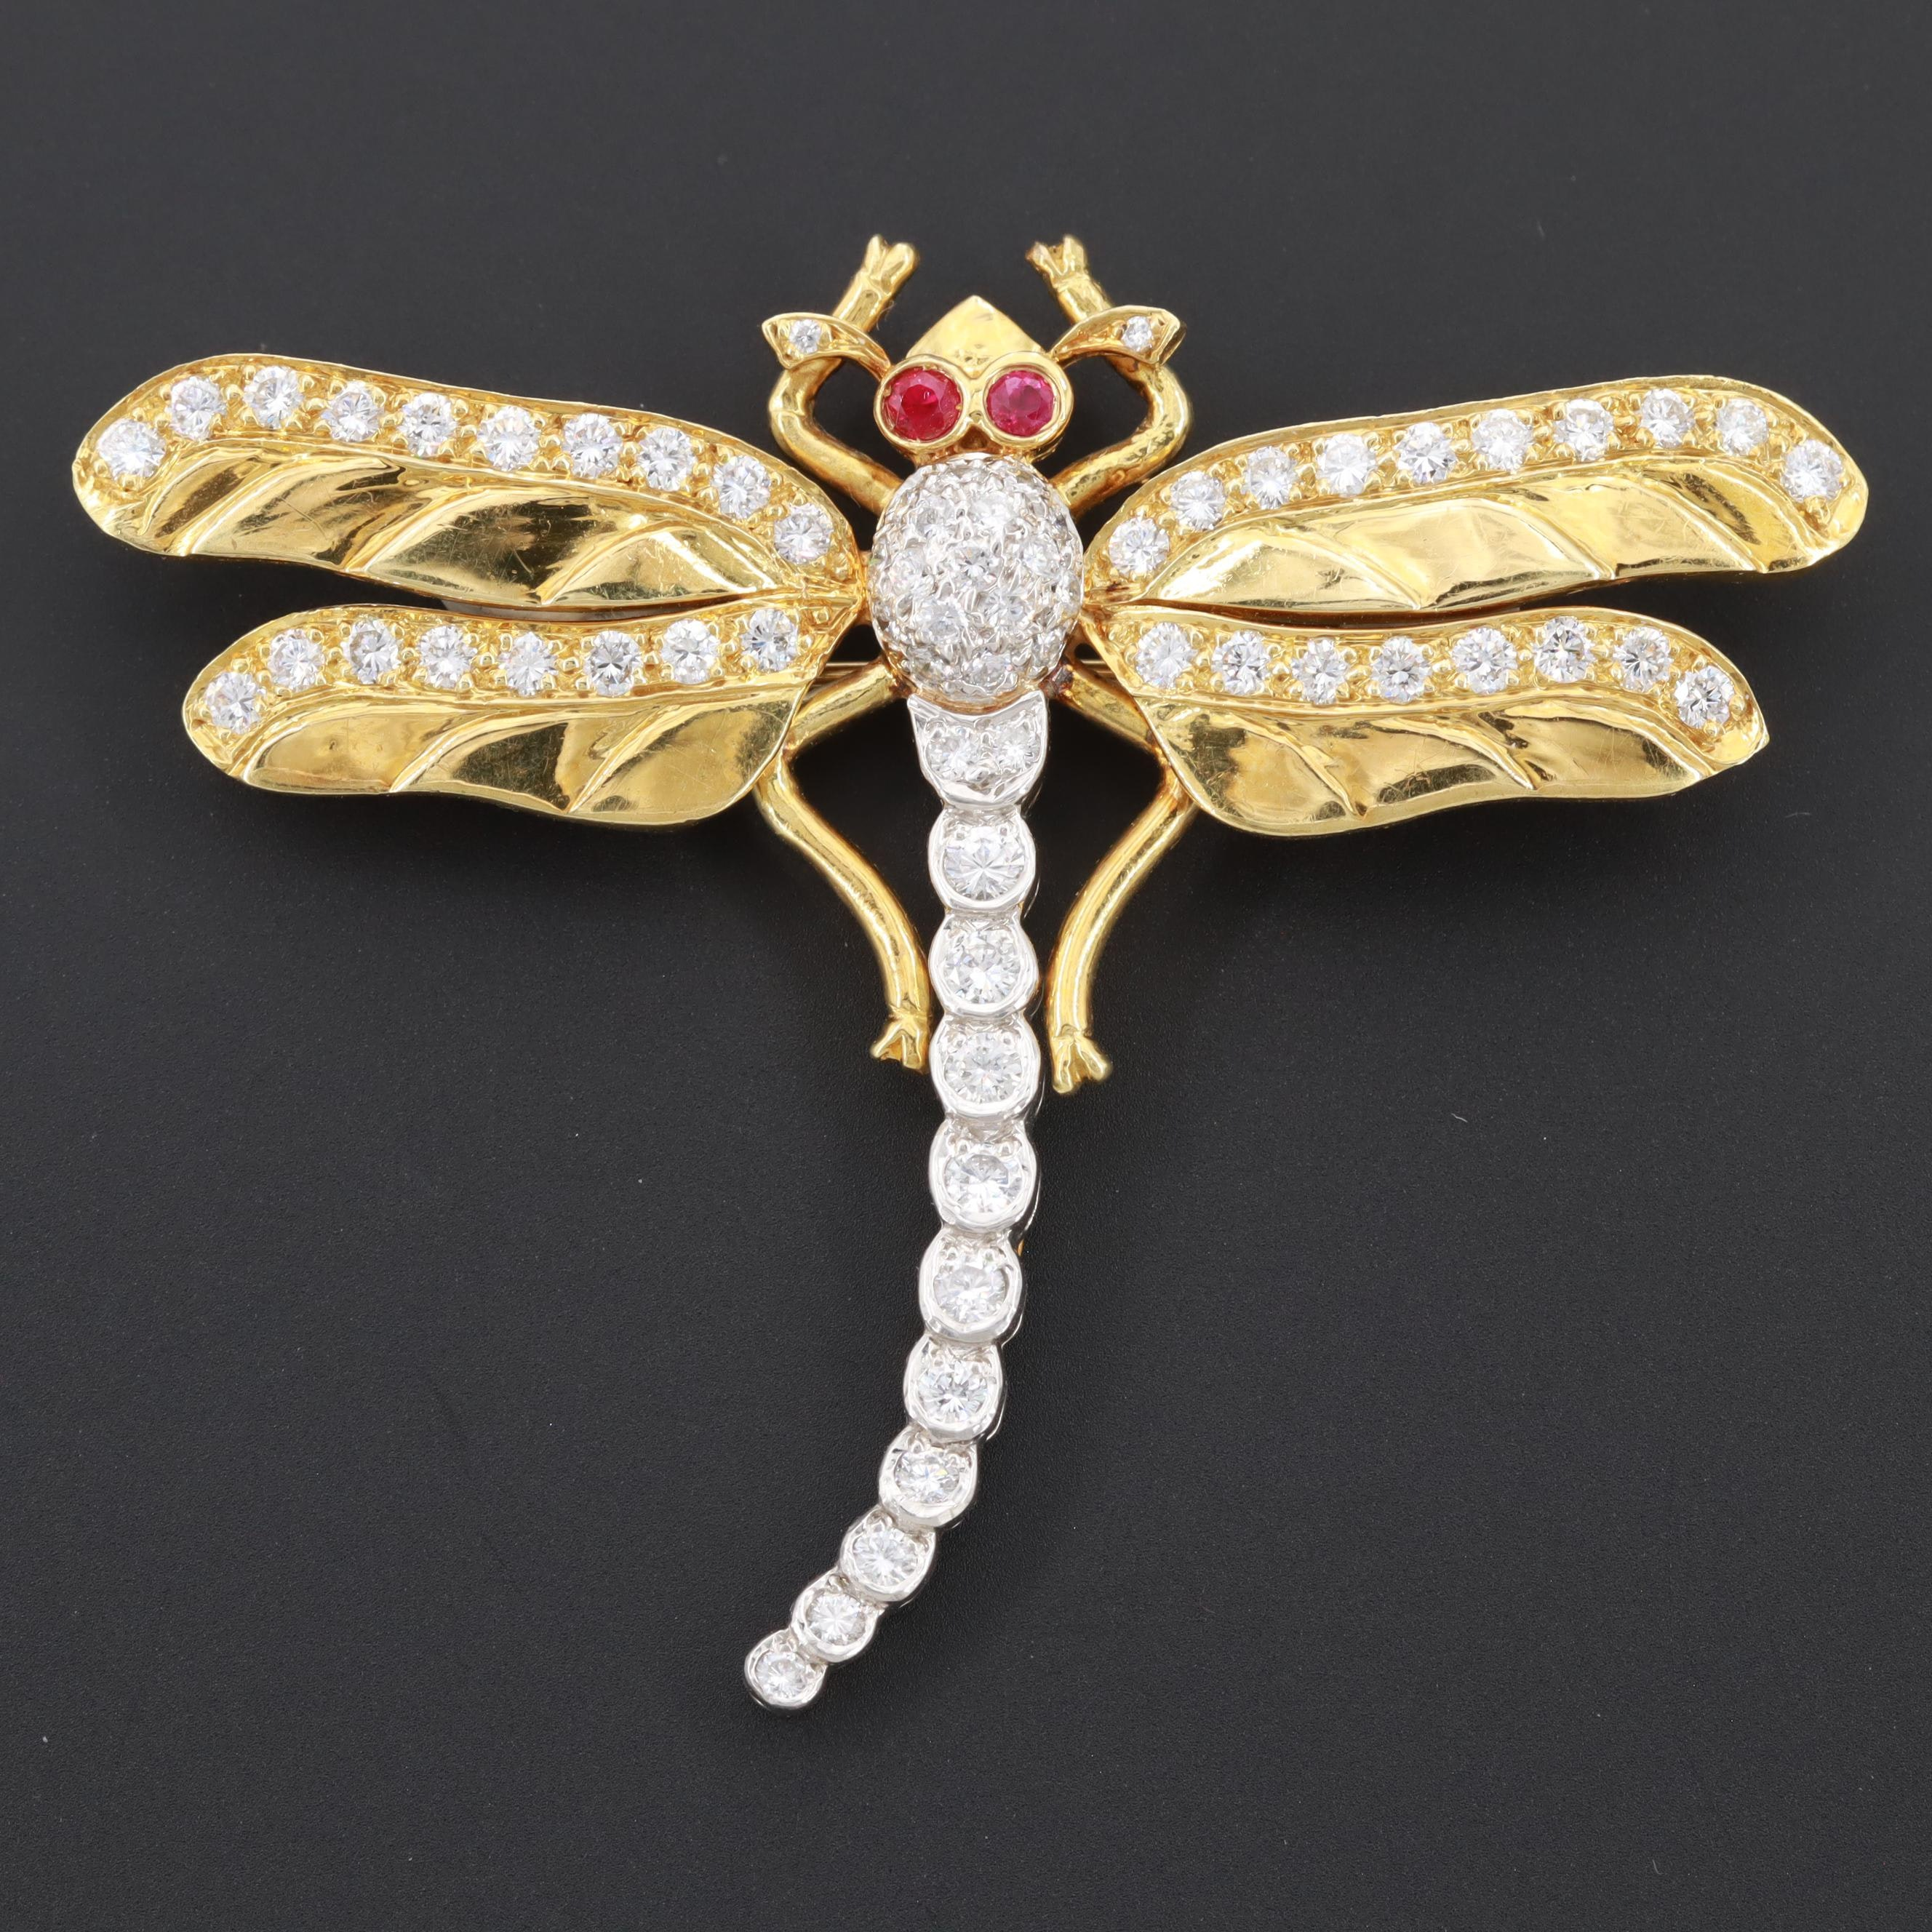 18K Yellow Gold and Platinum 1.98 CTW Diamond and Ruby Dragonfly Brooch